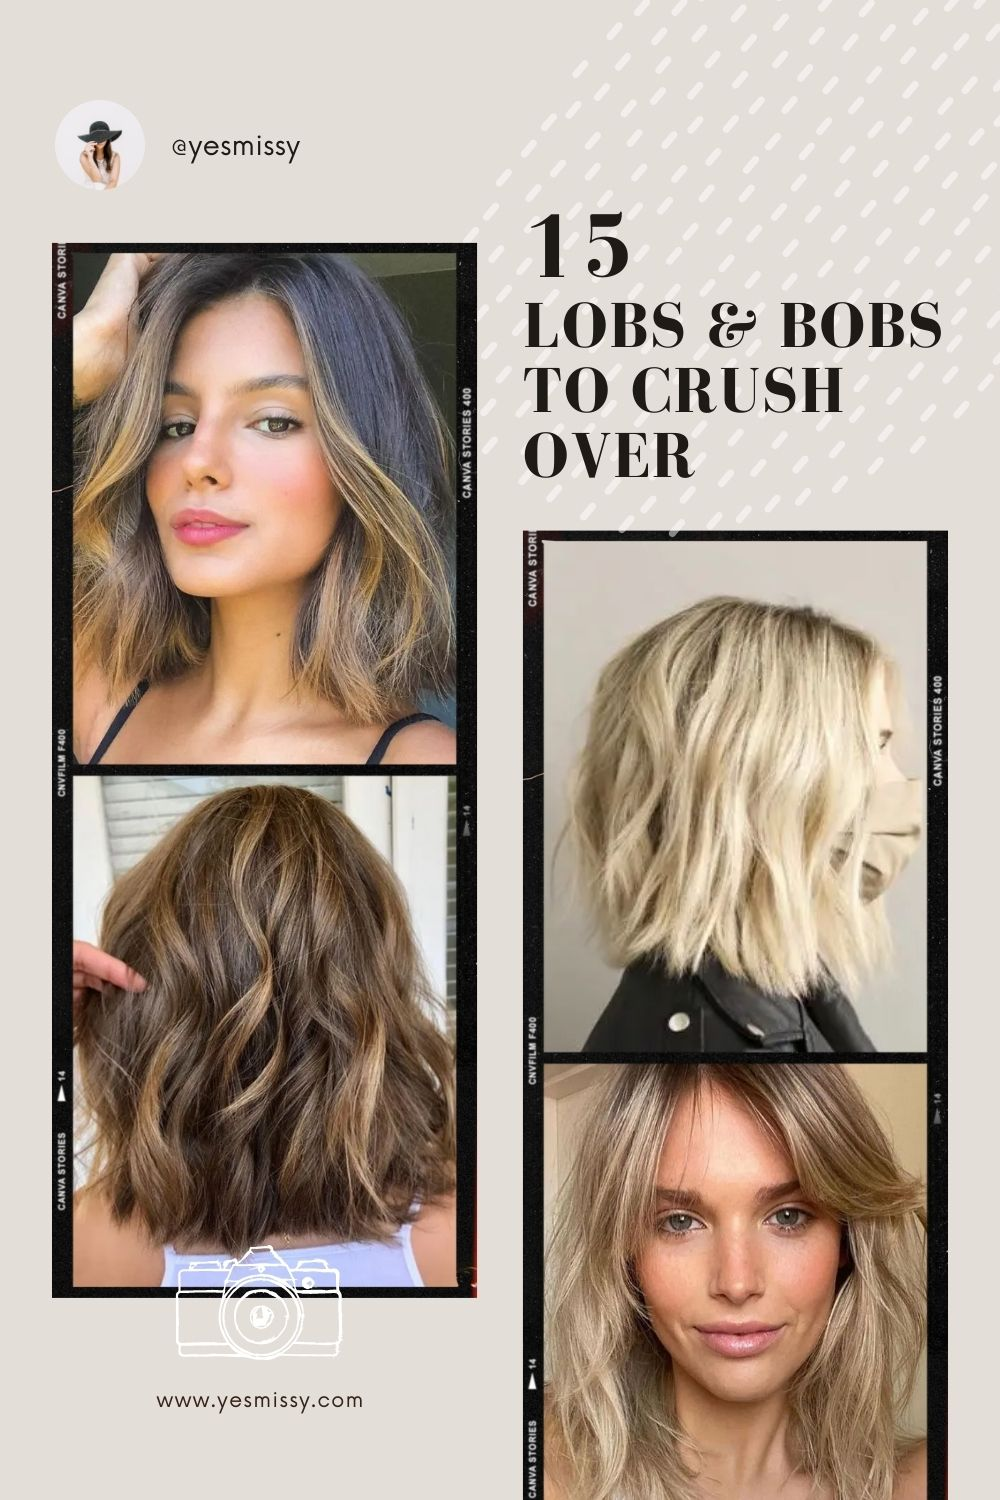 Haircut inspo - 15 Bob and Lob haircuts that will make you want to cut your hair rn!